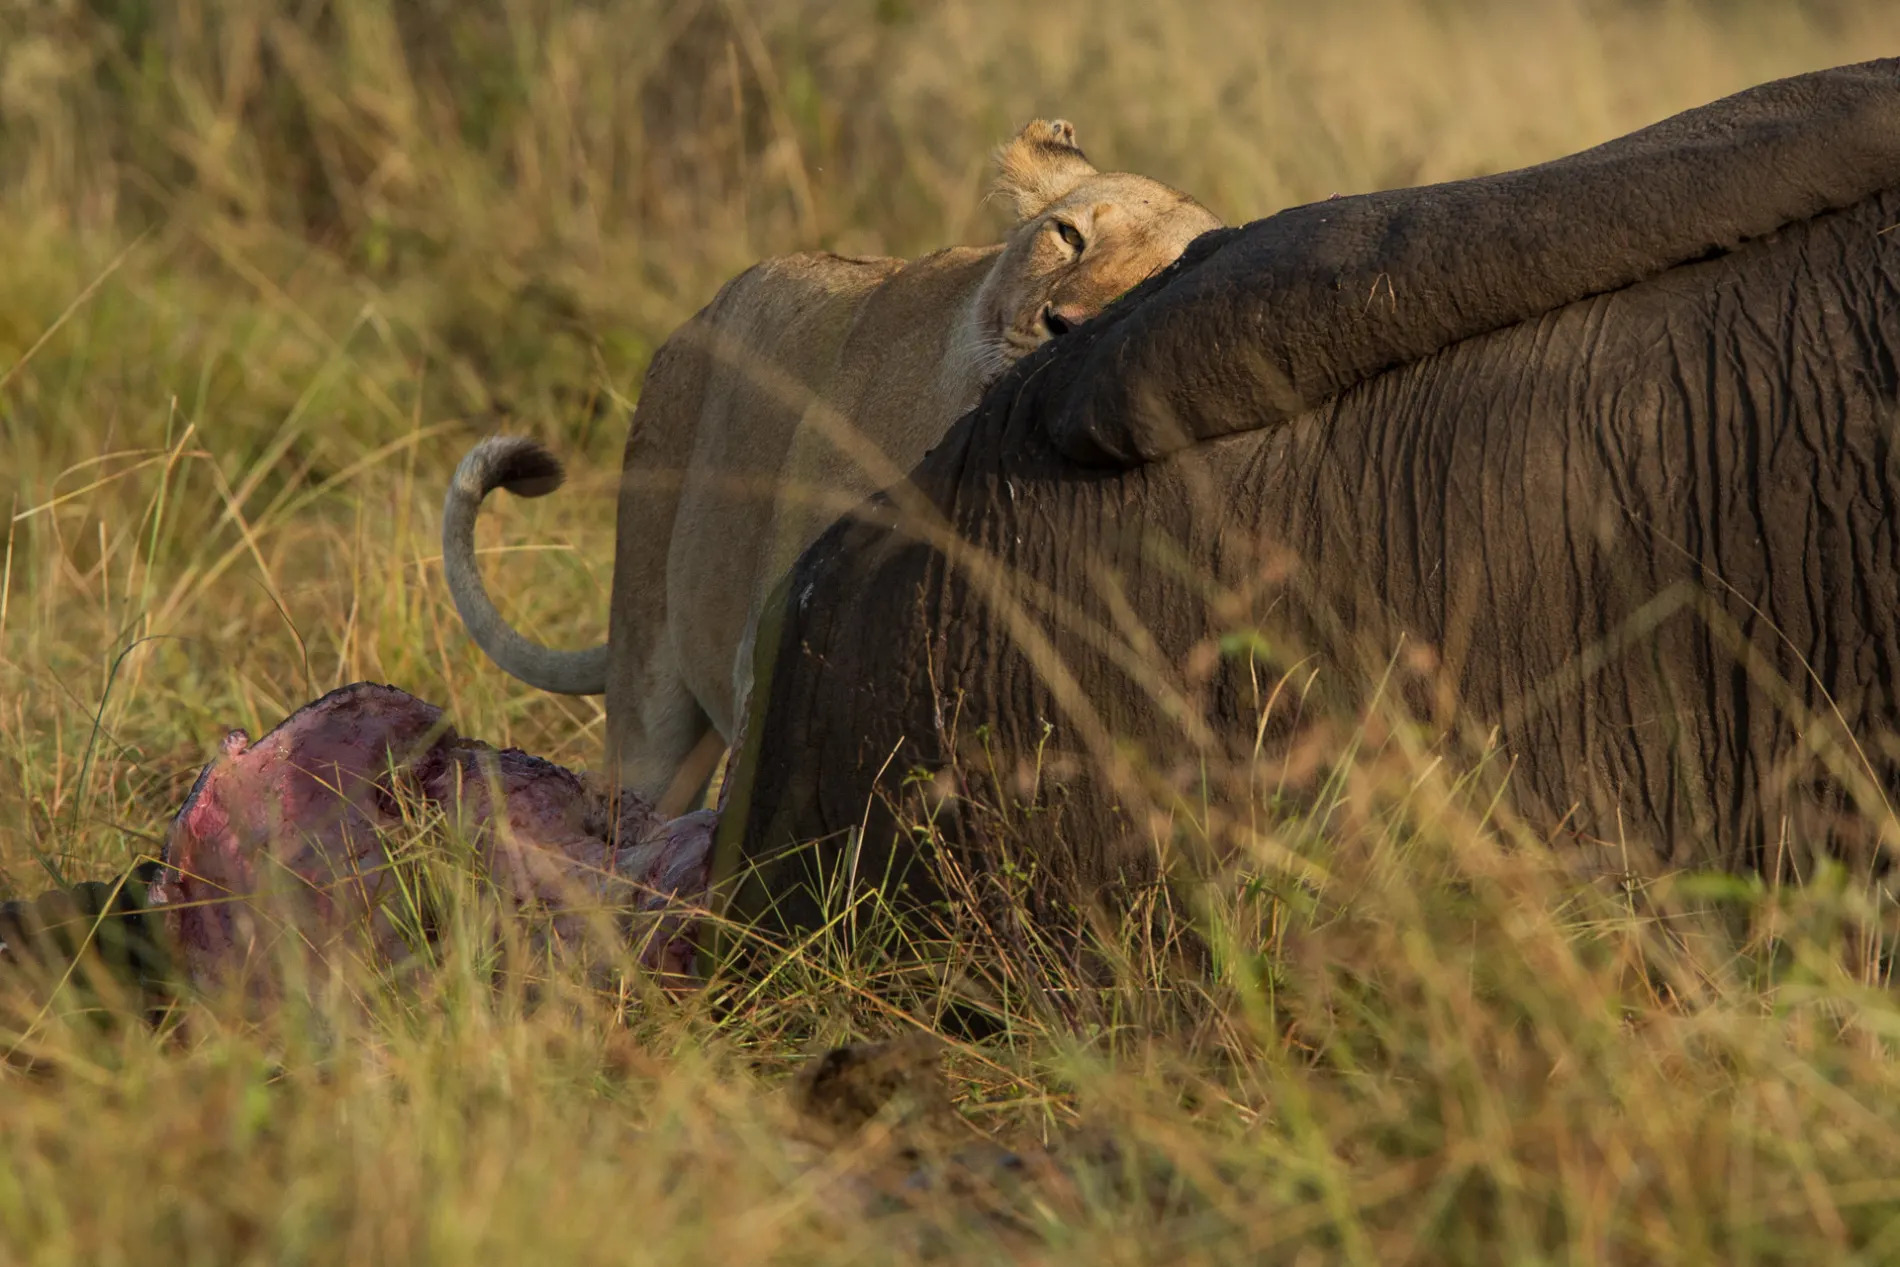 LIoness and elephant